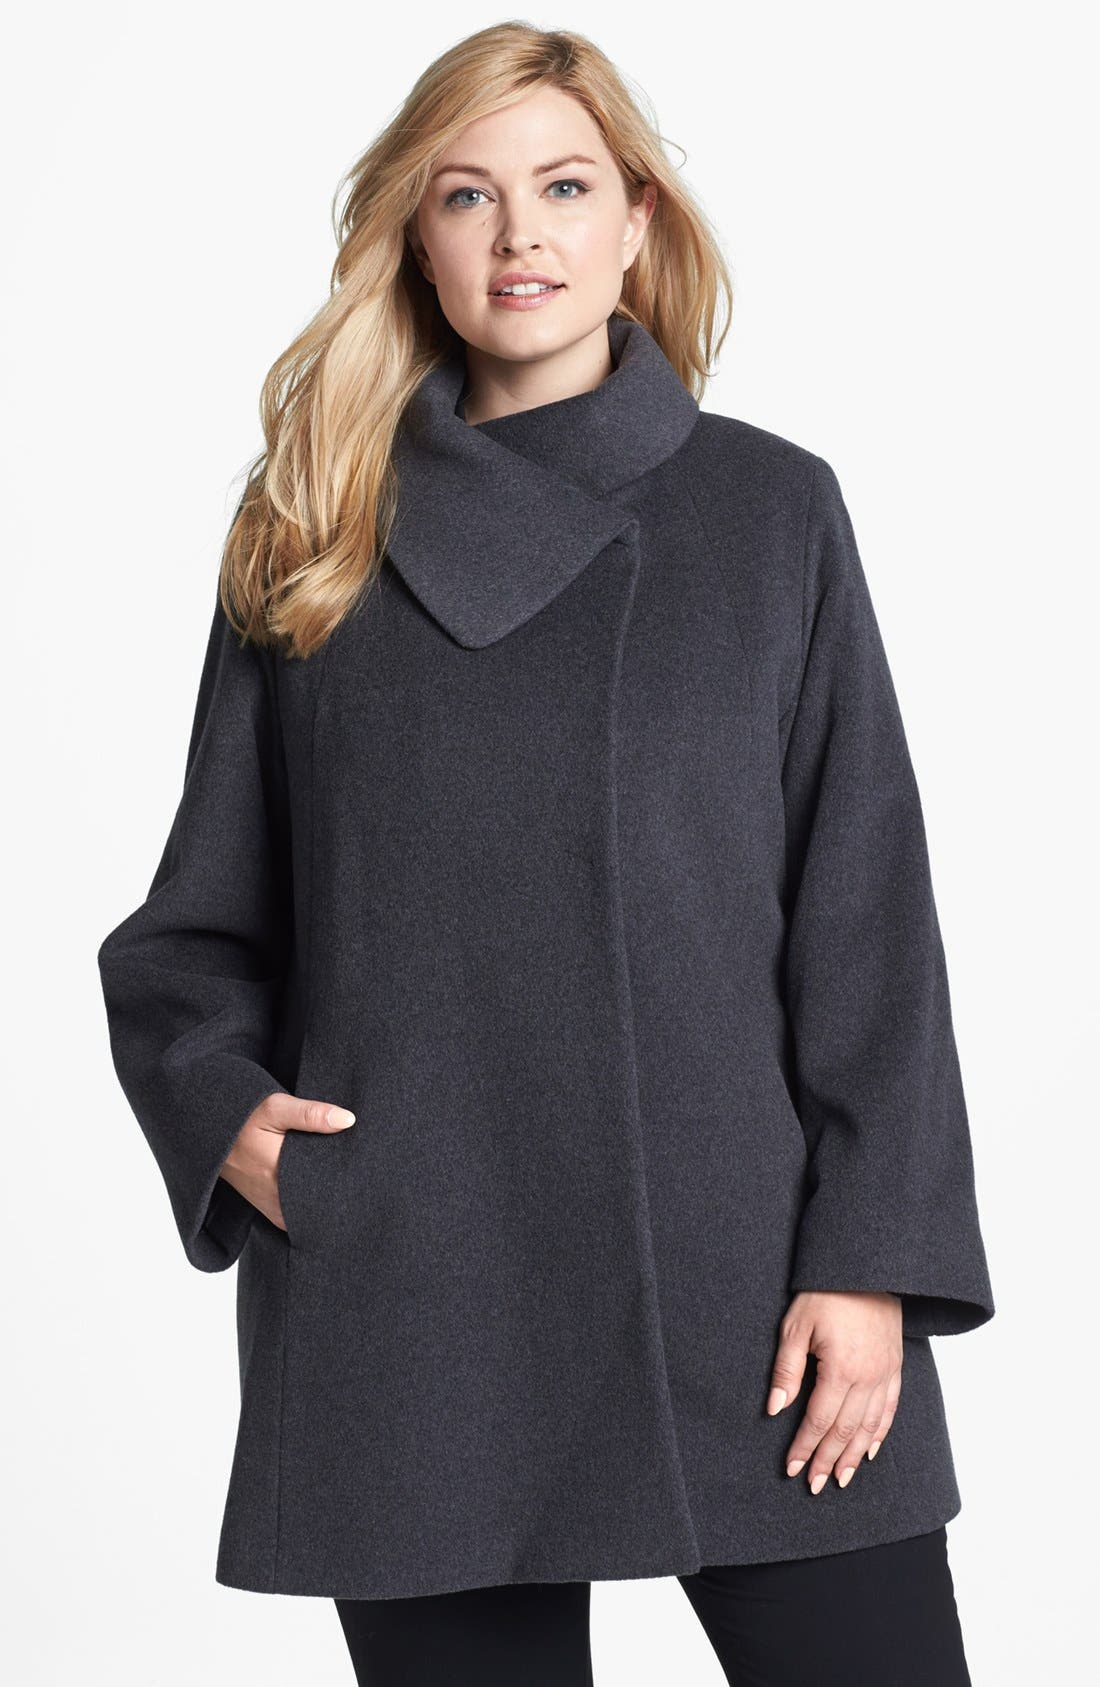 Alternate Image 1 Selected - Cinzia Rocca Due Portrait Collar Wool & Angora Blend Walking Coat (Plus Size)